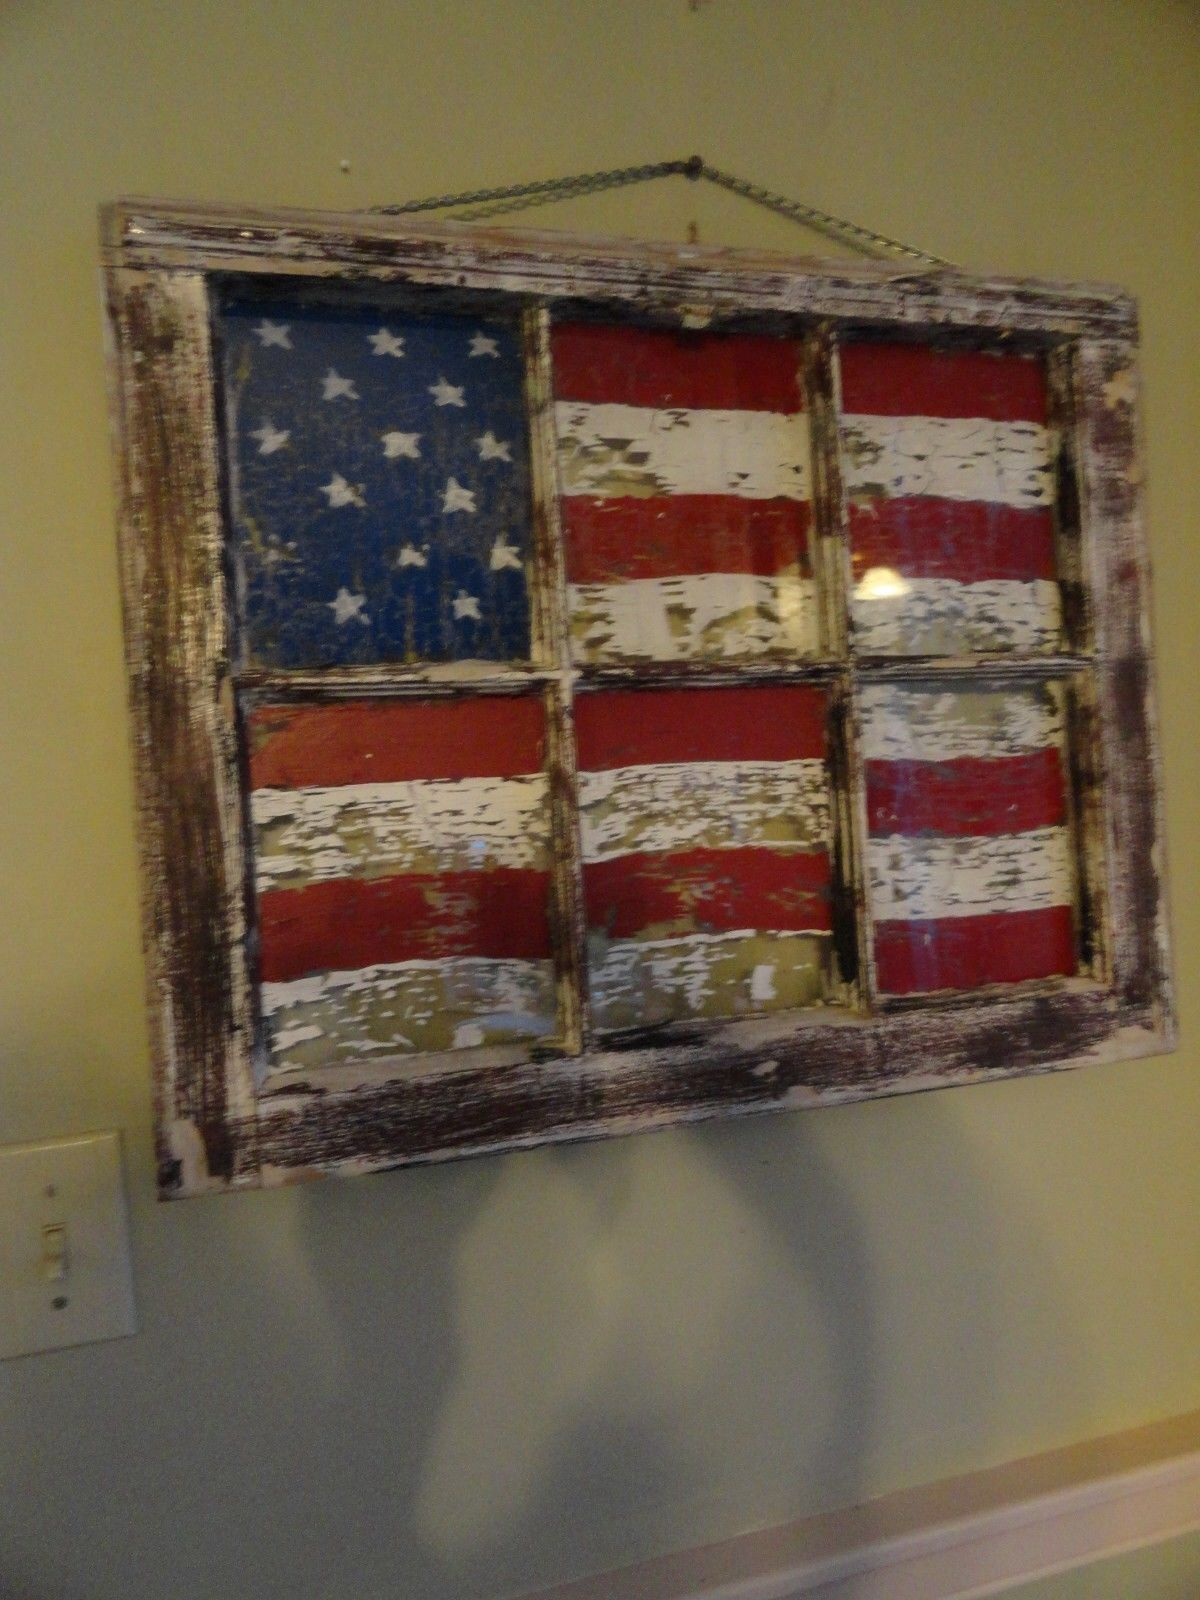 Diy old window decor  old window with painted flag  primitive look  diycrafts